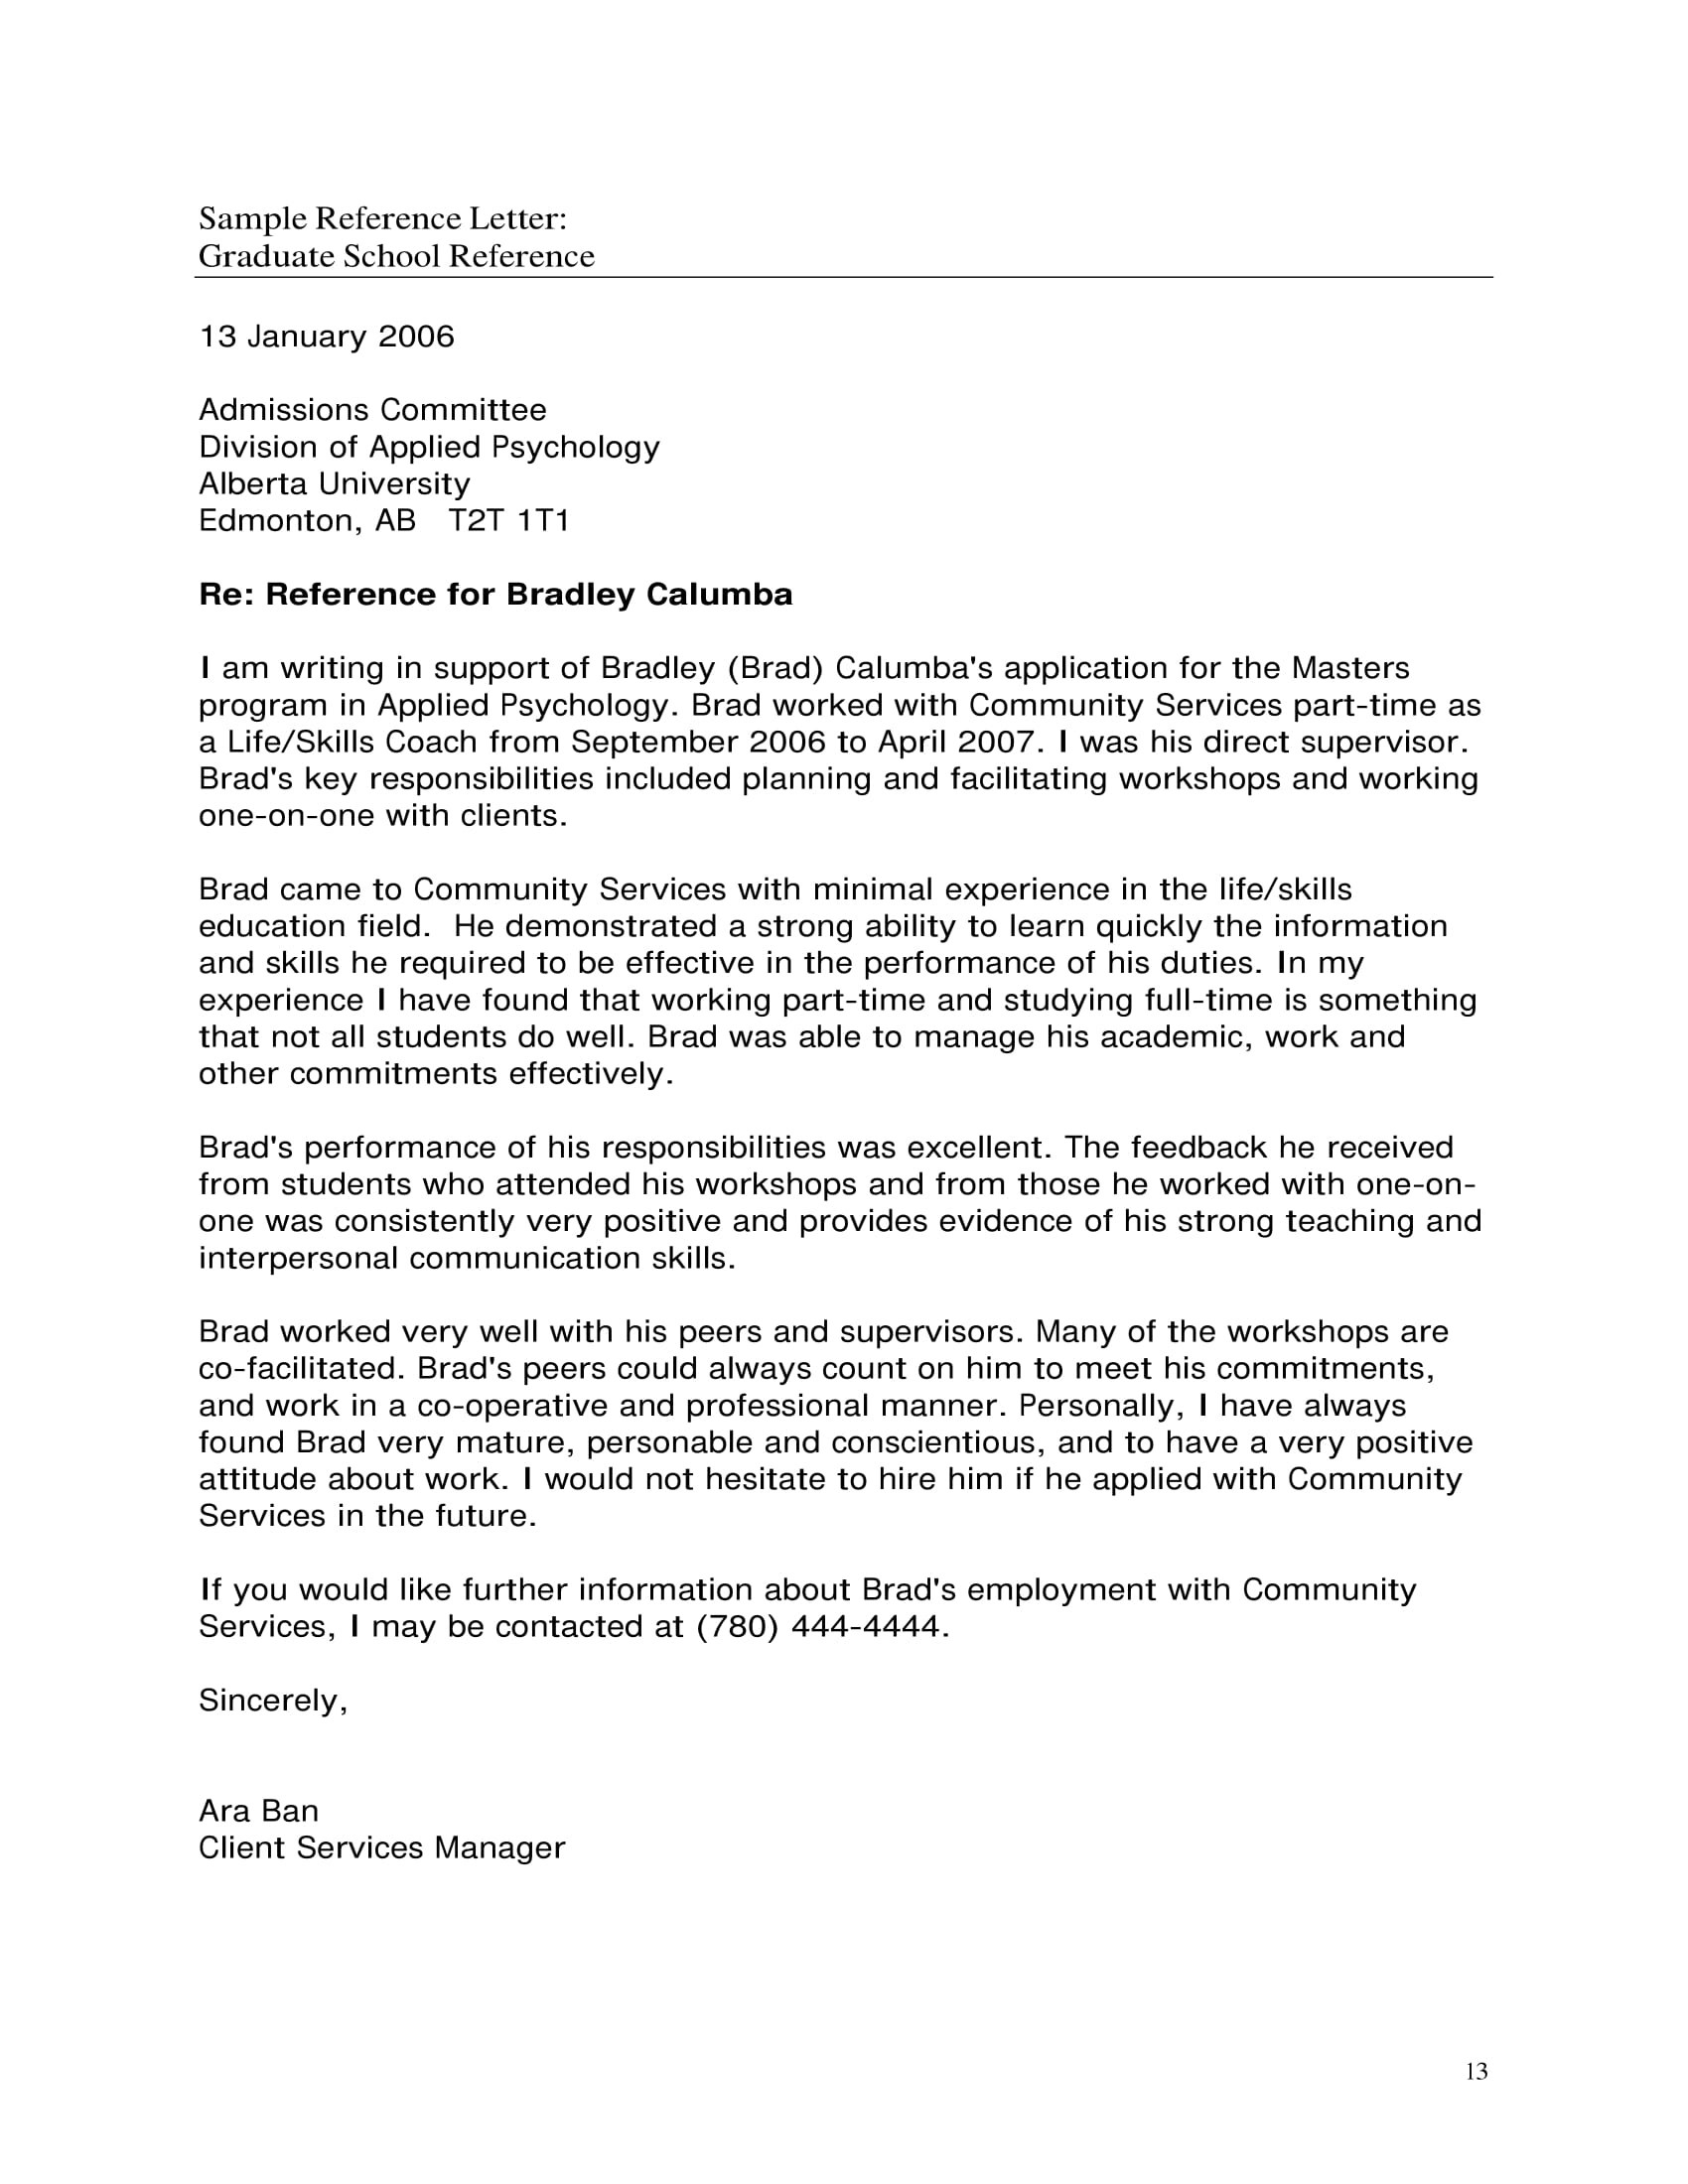 10 Business Reference Letter Examples